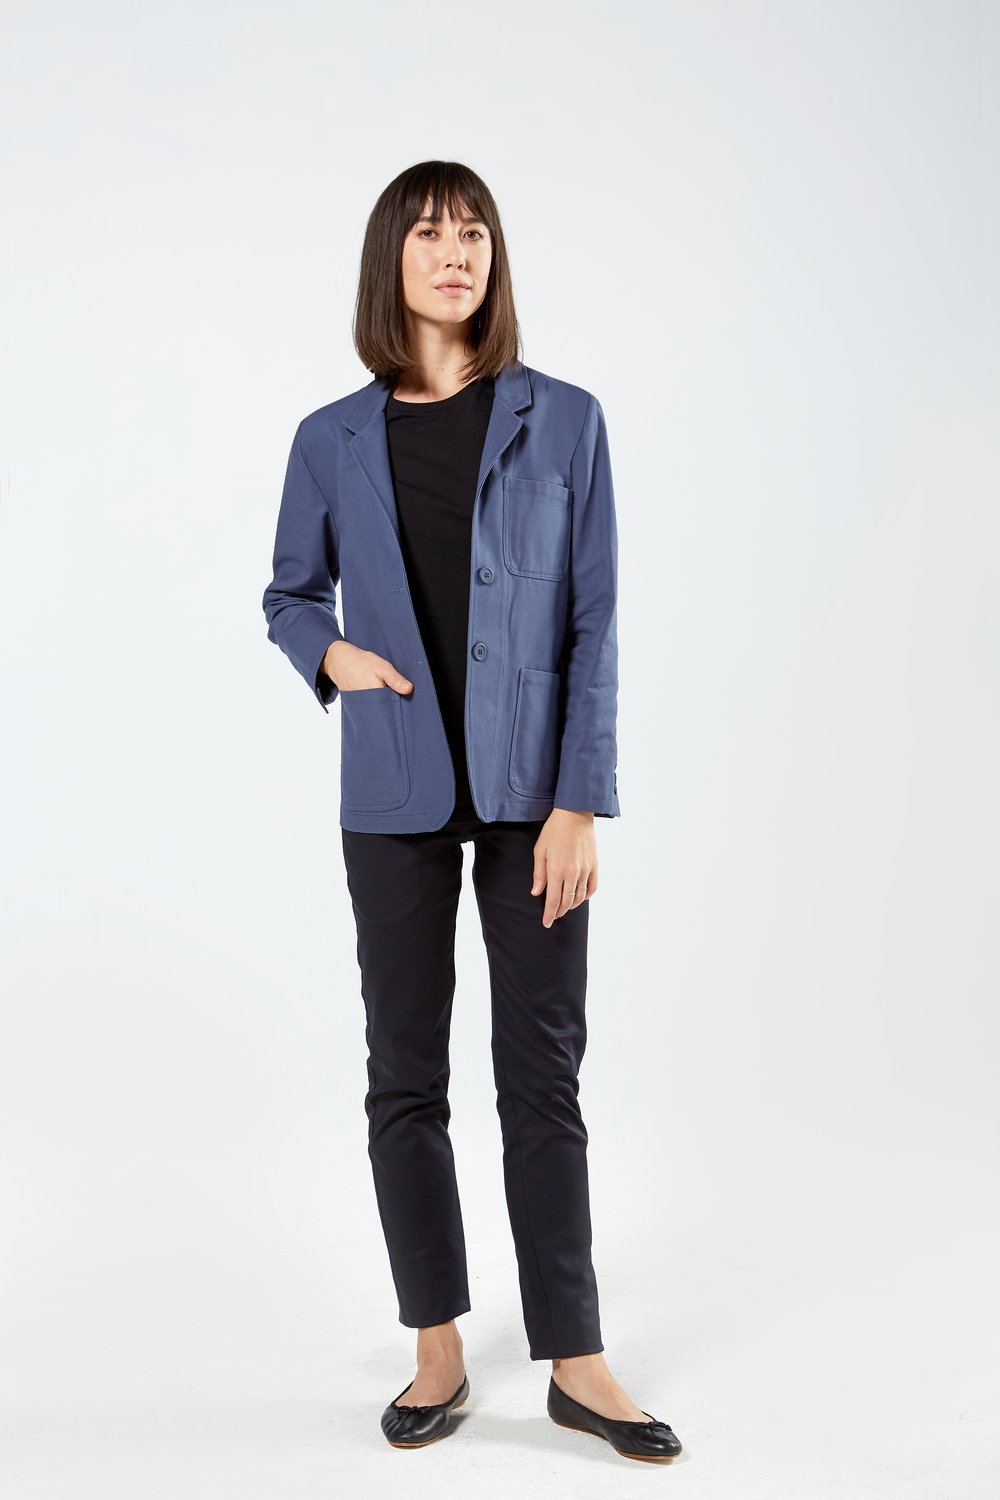 Women's Patch Pocket Blazer in Royal Blue